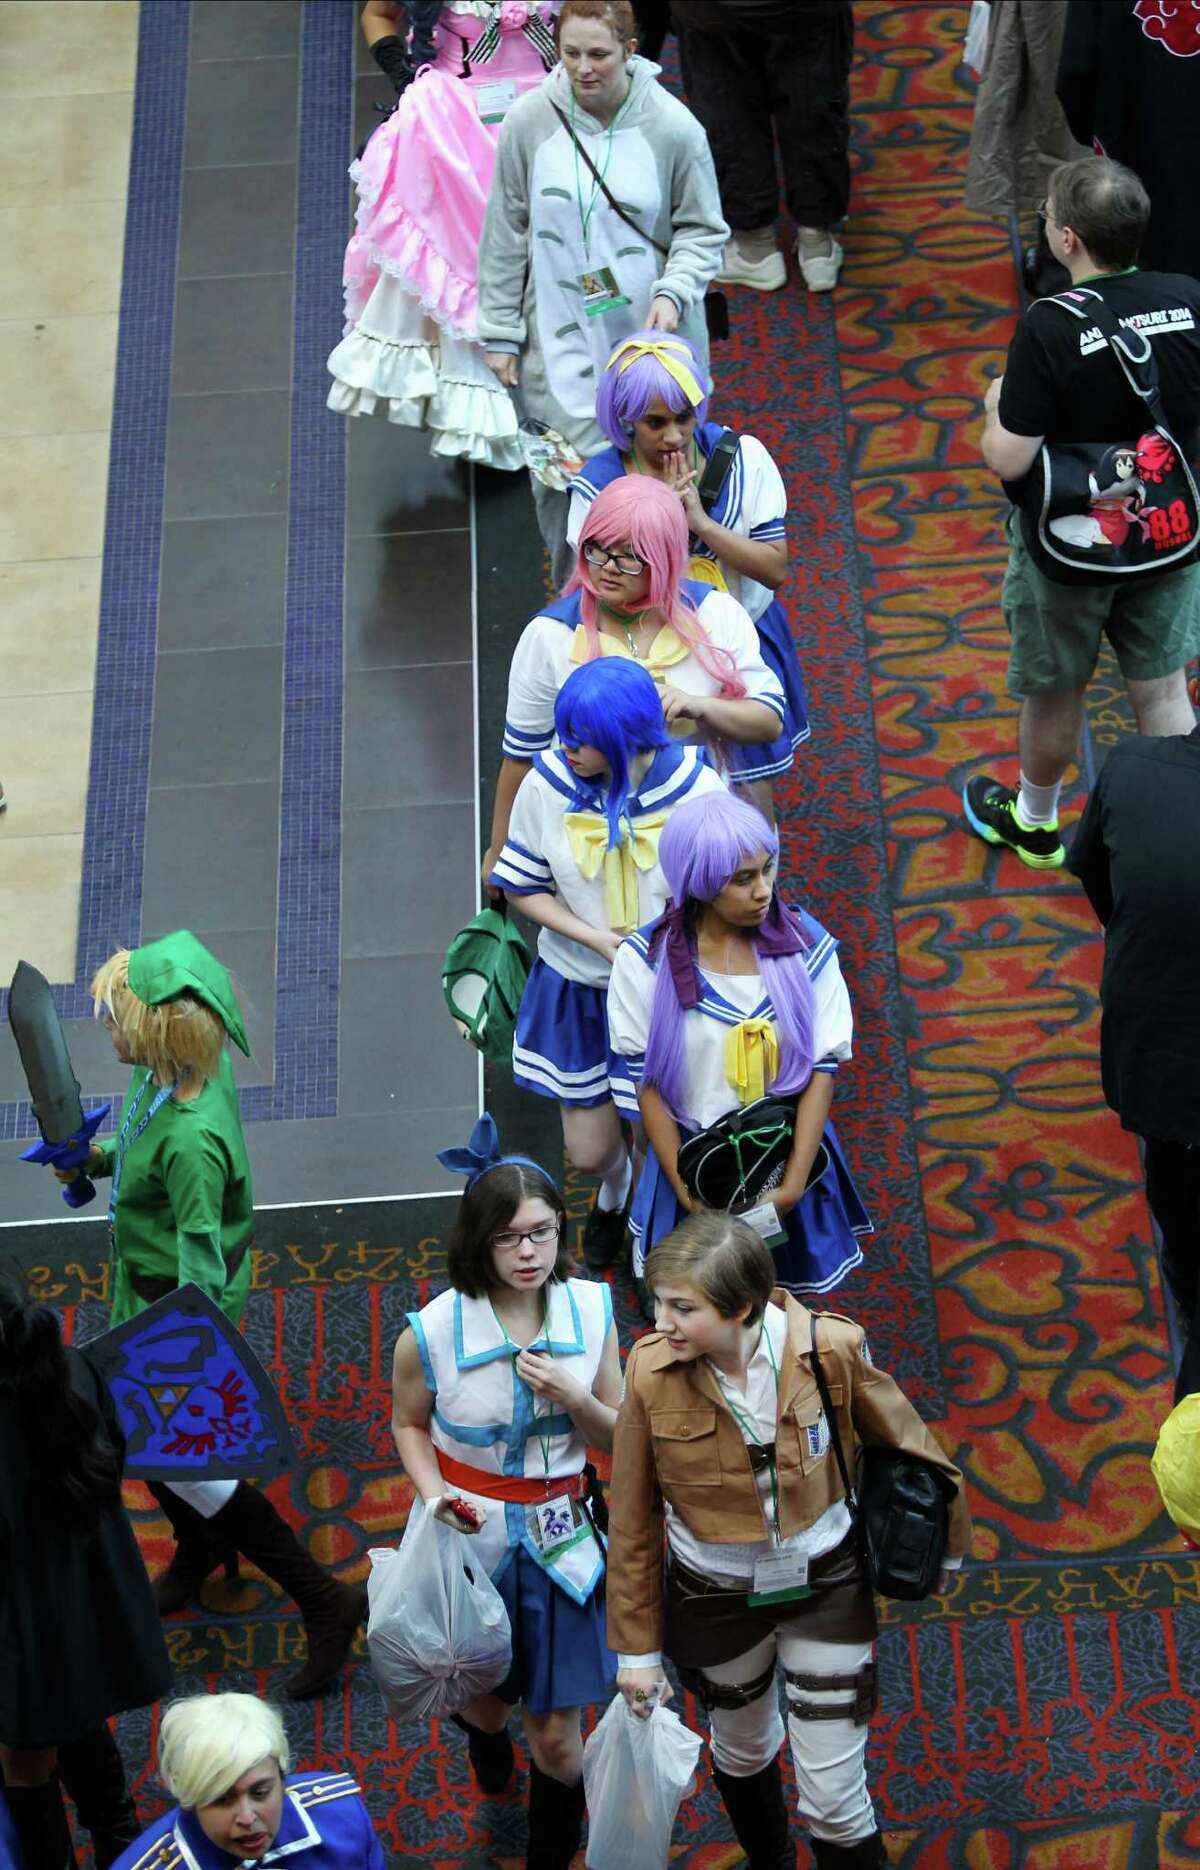 Attendees of the second day of the San Japan: Samurai 7 anime convention walk through the Henry B. Gonzalez Convention Center in San Antonio on Saturday, July 19, 2014.